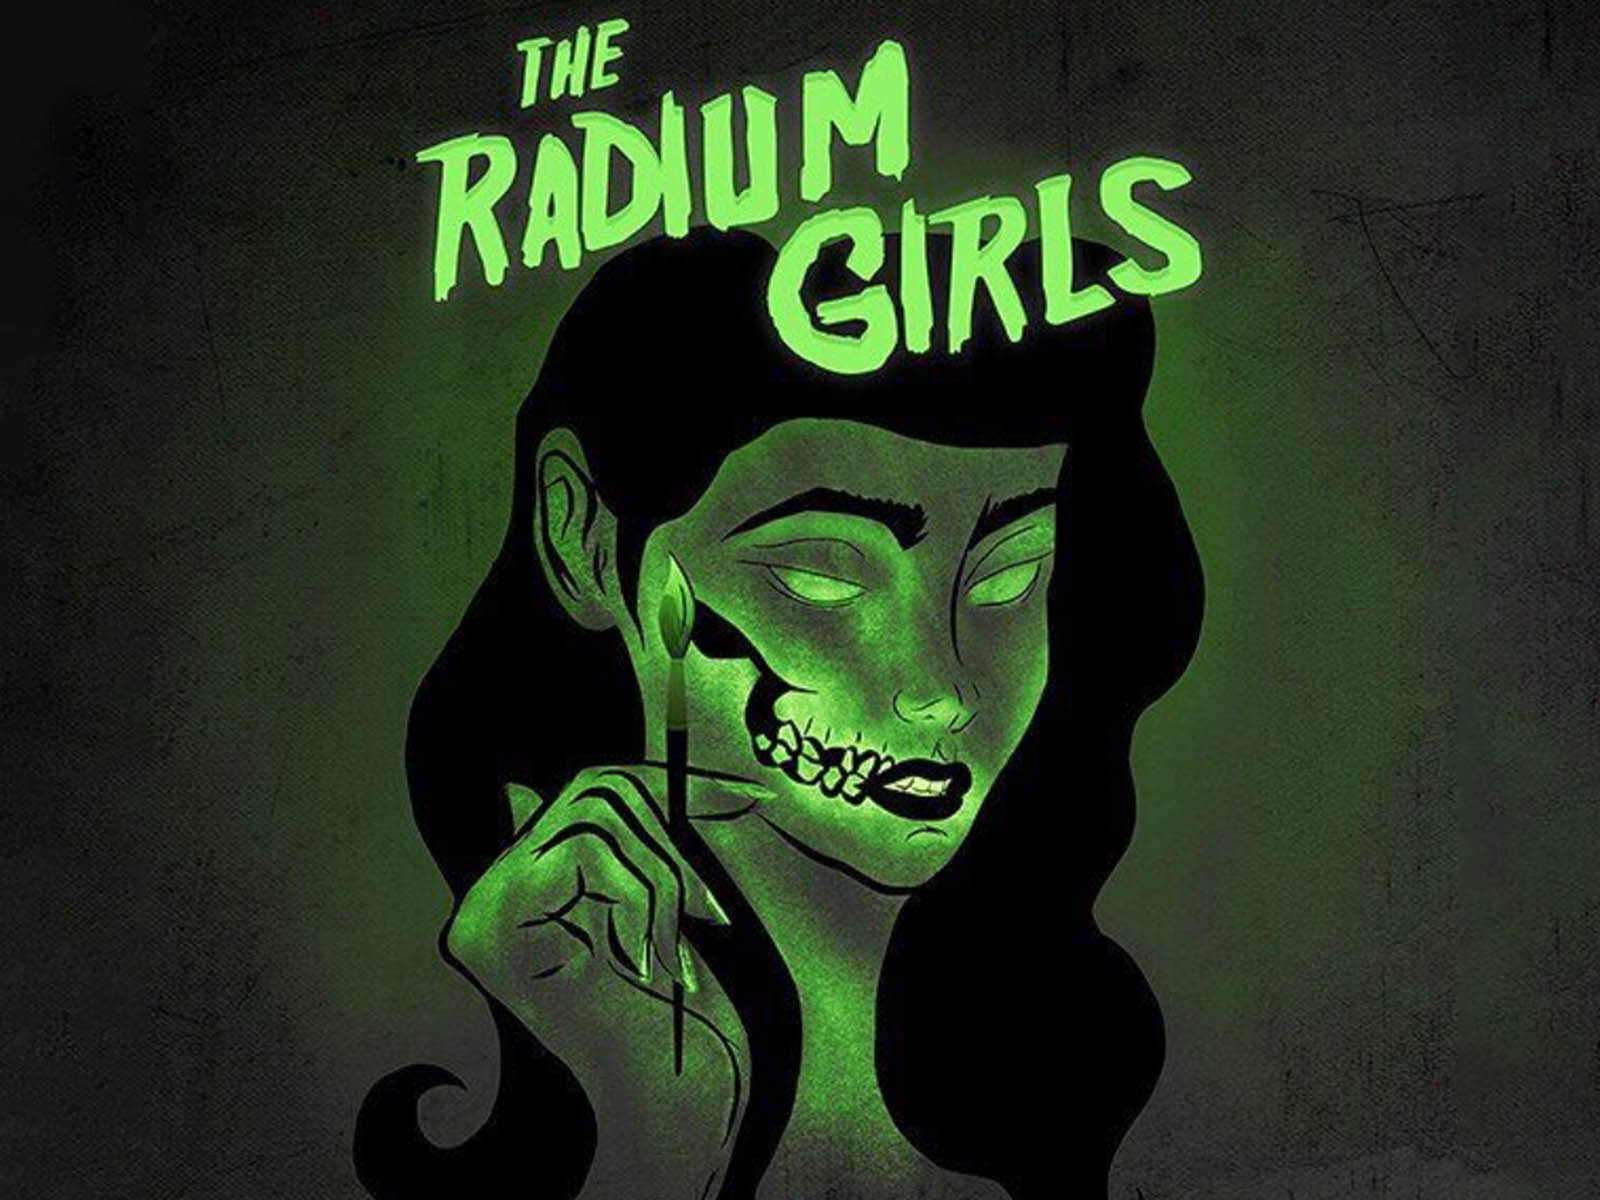 radium-girls-7.jpg